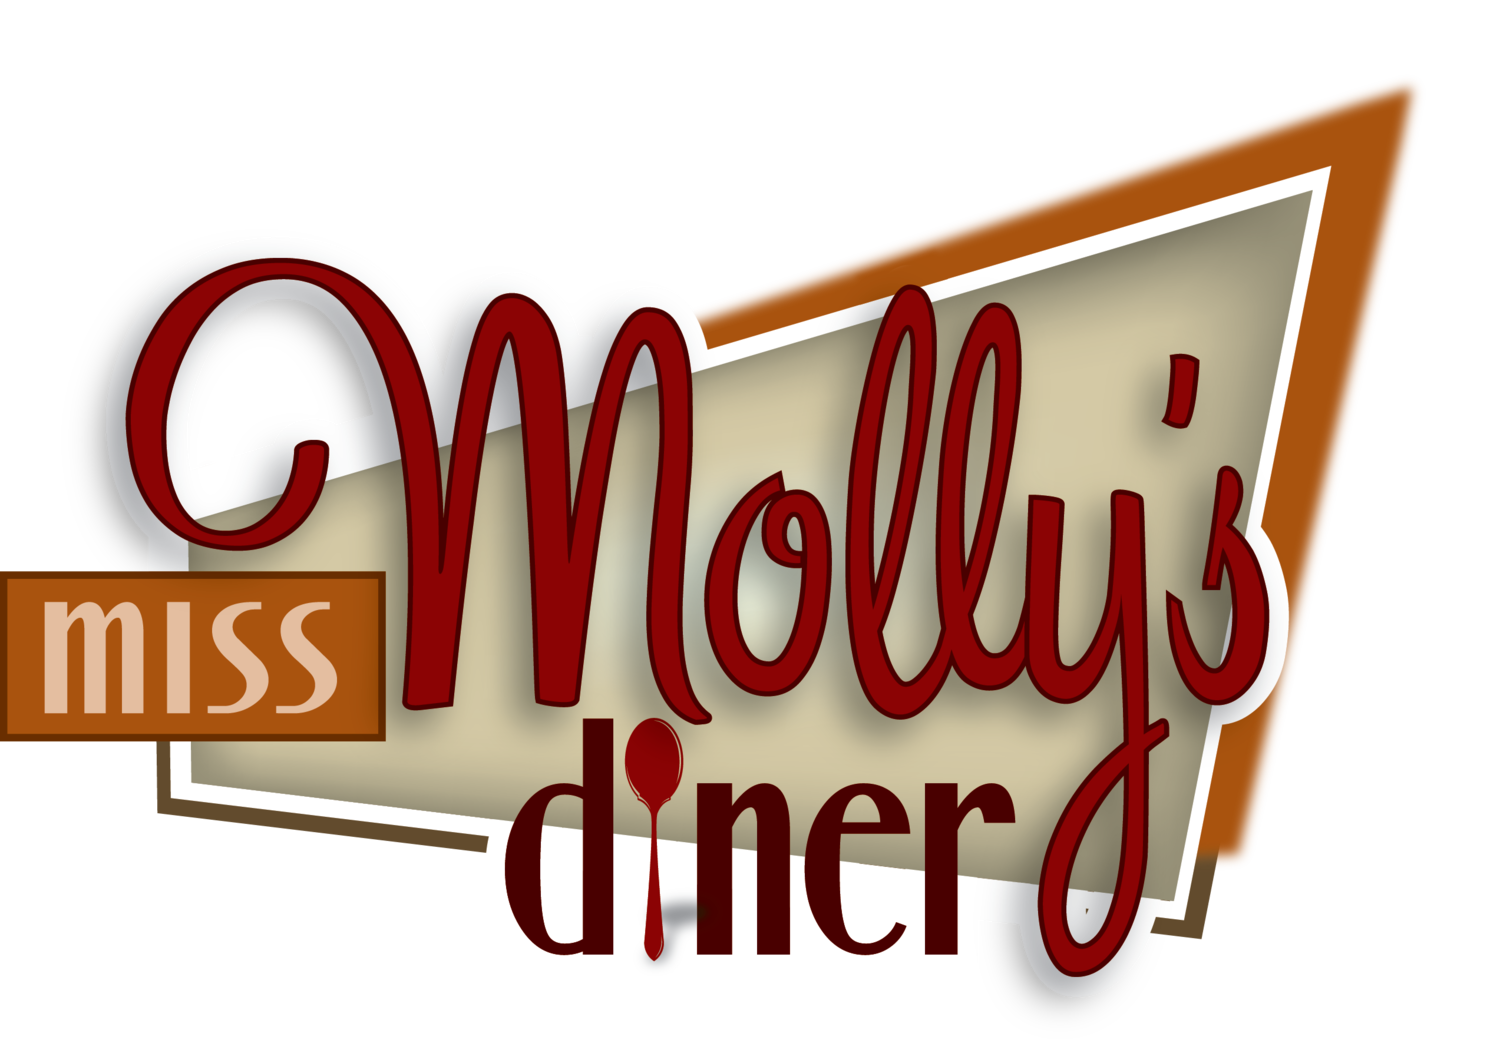 Miss Molly's Diner